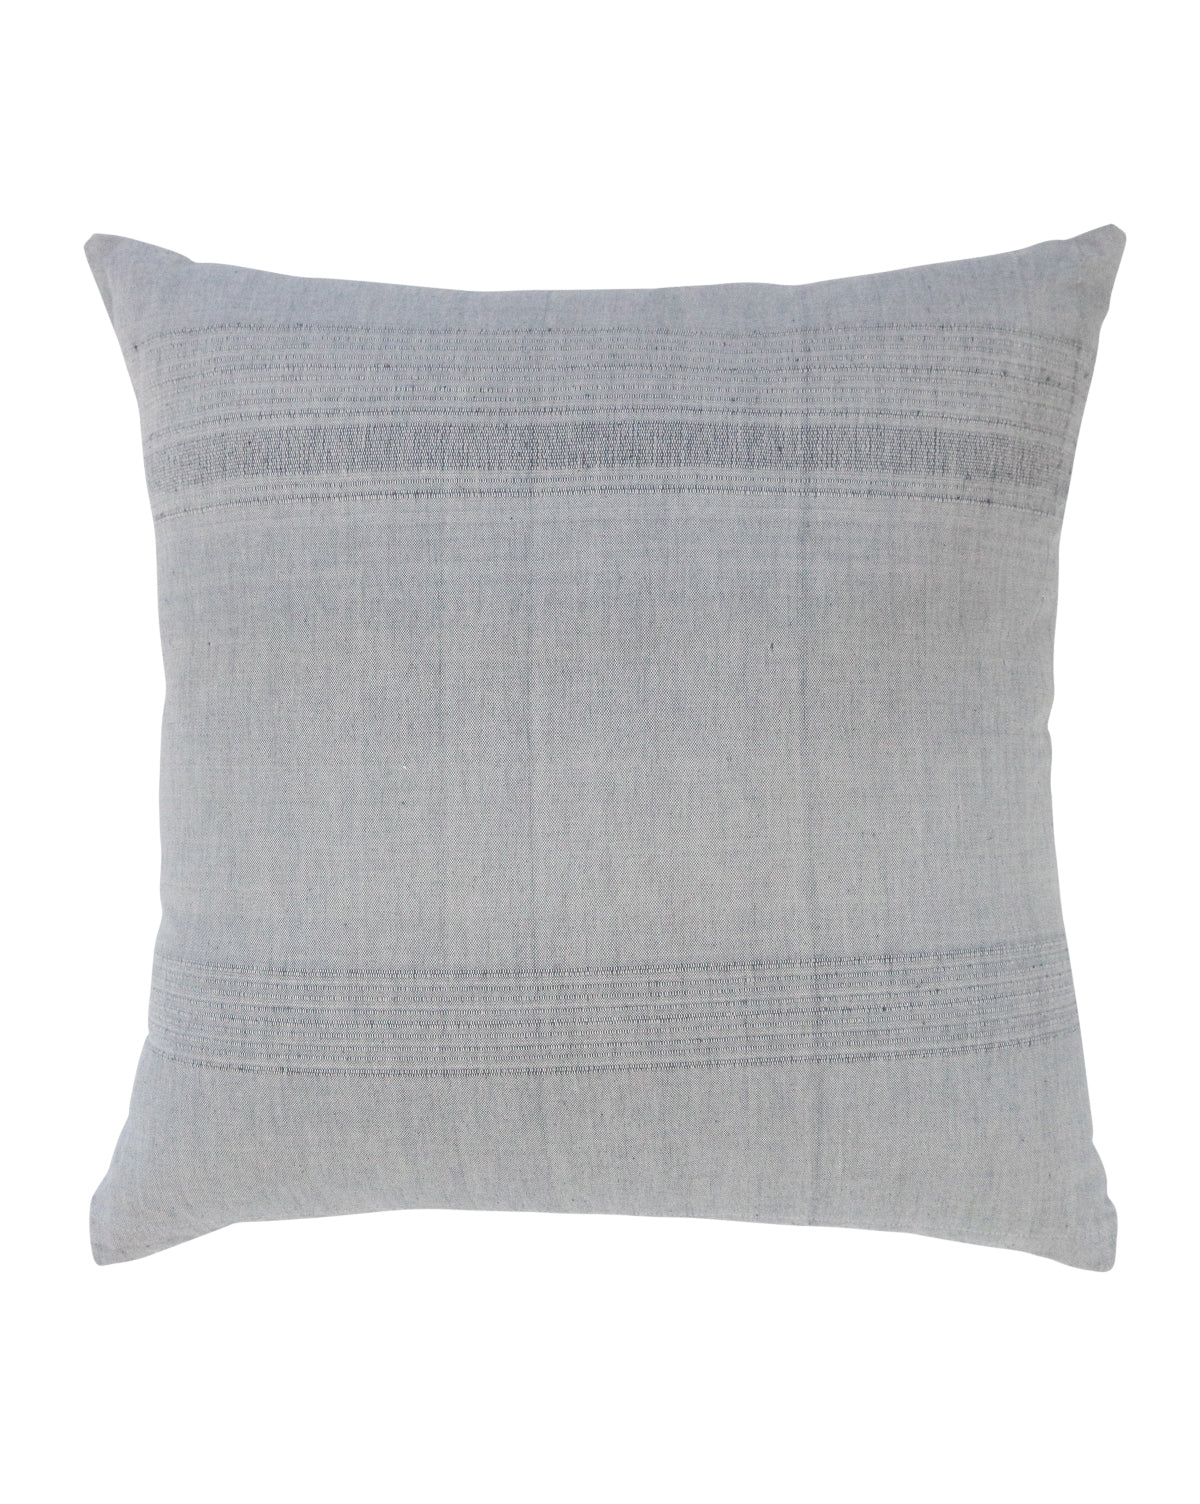 Gizi Pillow Cover